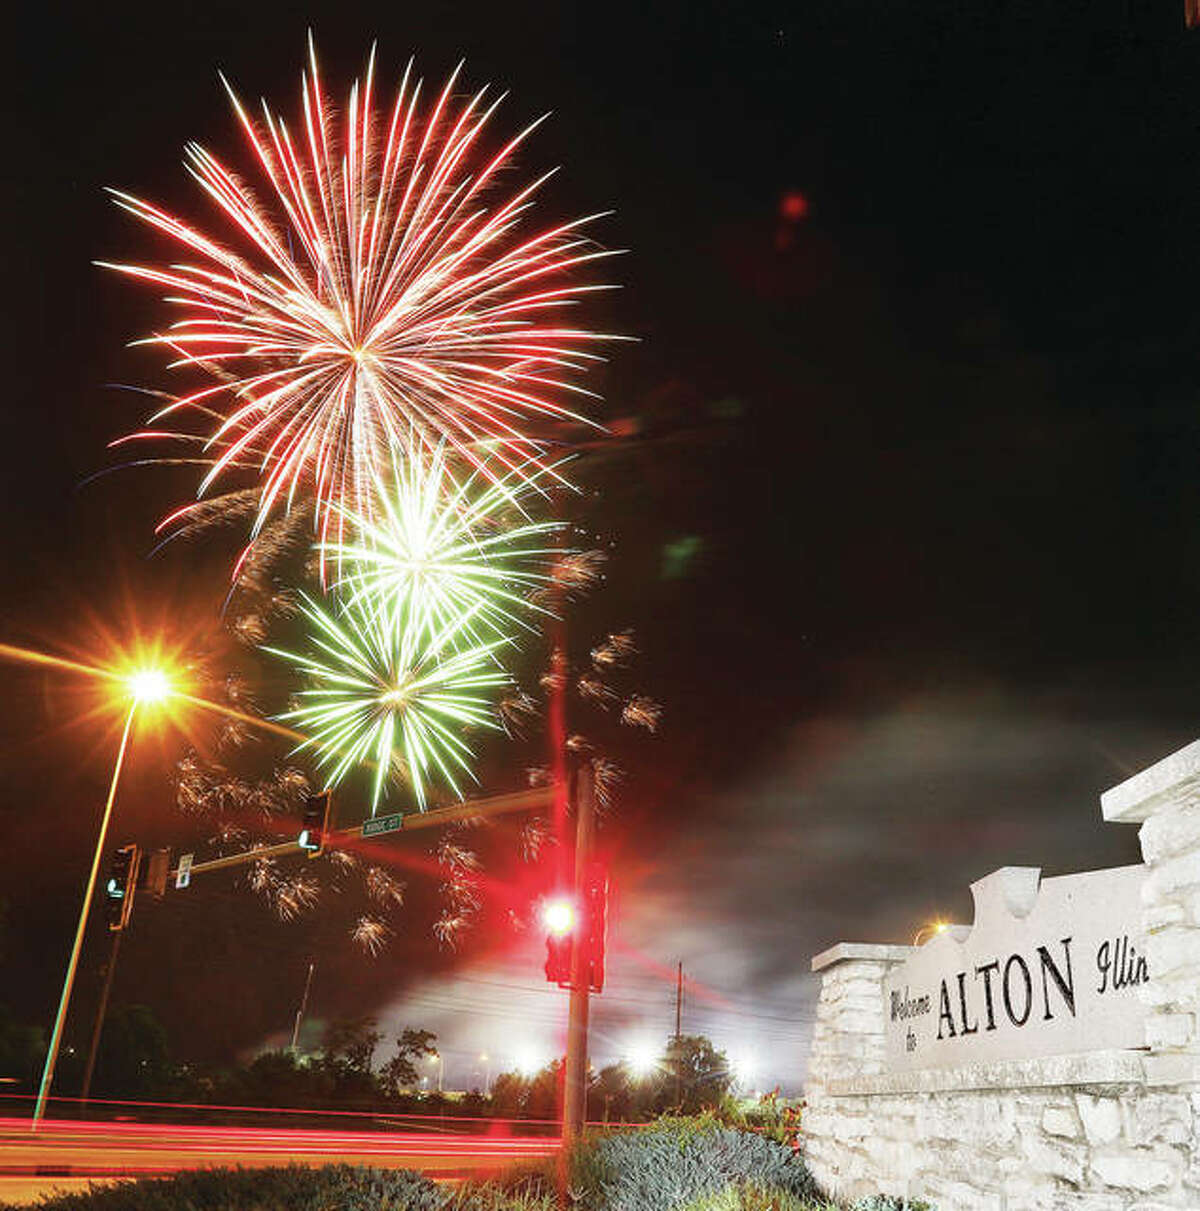 Simultaneous Thursday night fireworks continue at 9 p.m. from the parking lot between Henry Street and Landmarks Boulevard in Alton and on the riverfront in Grafton.